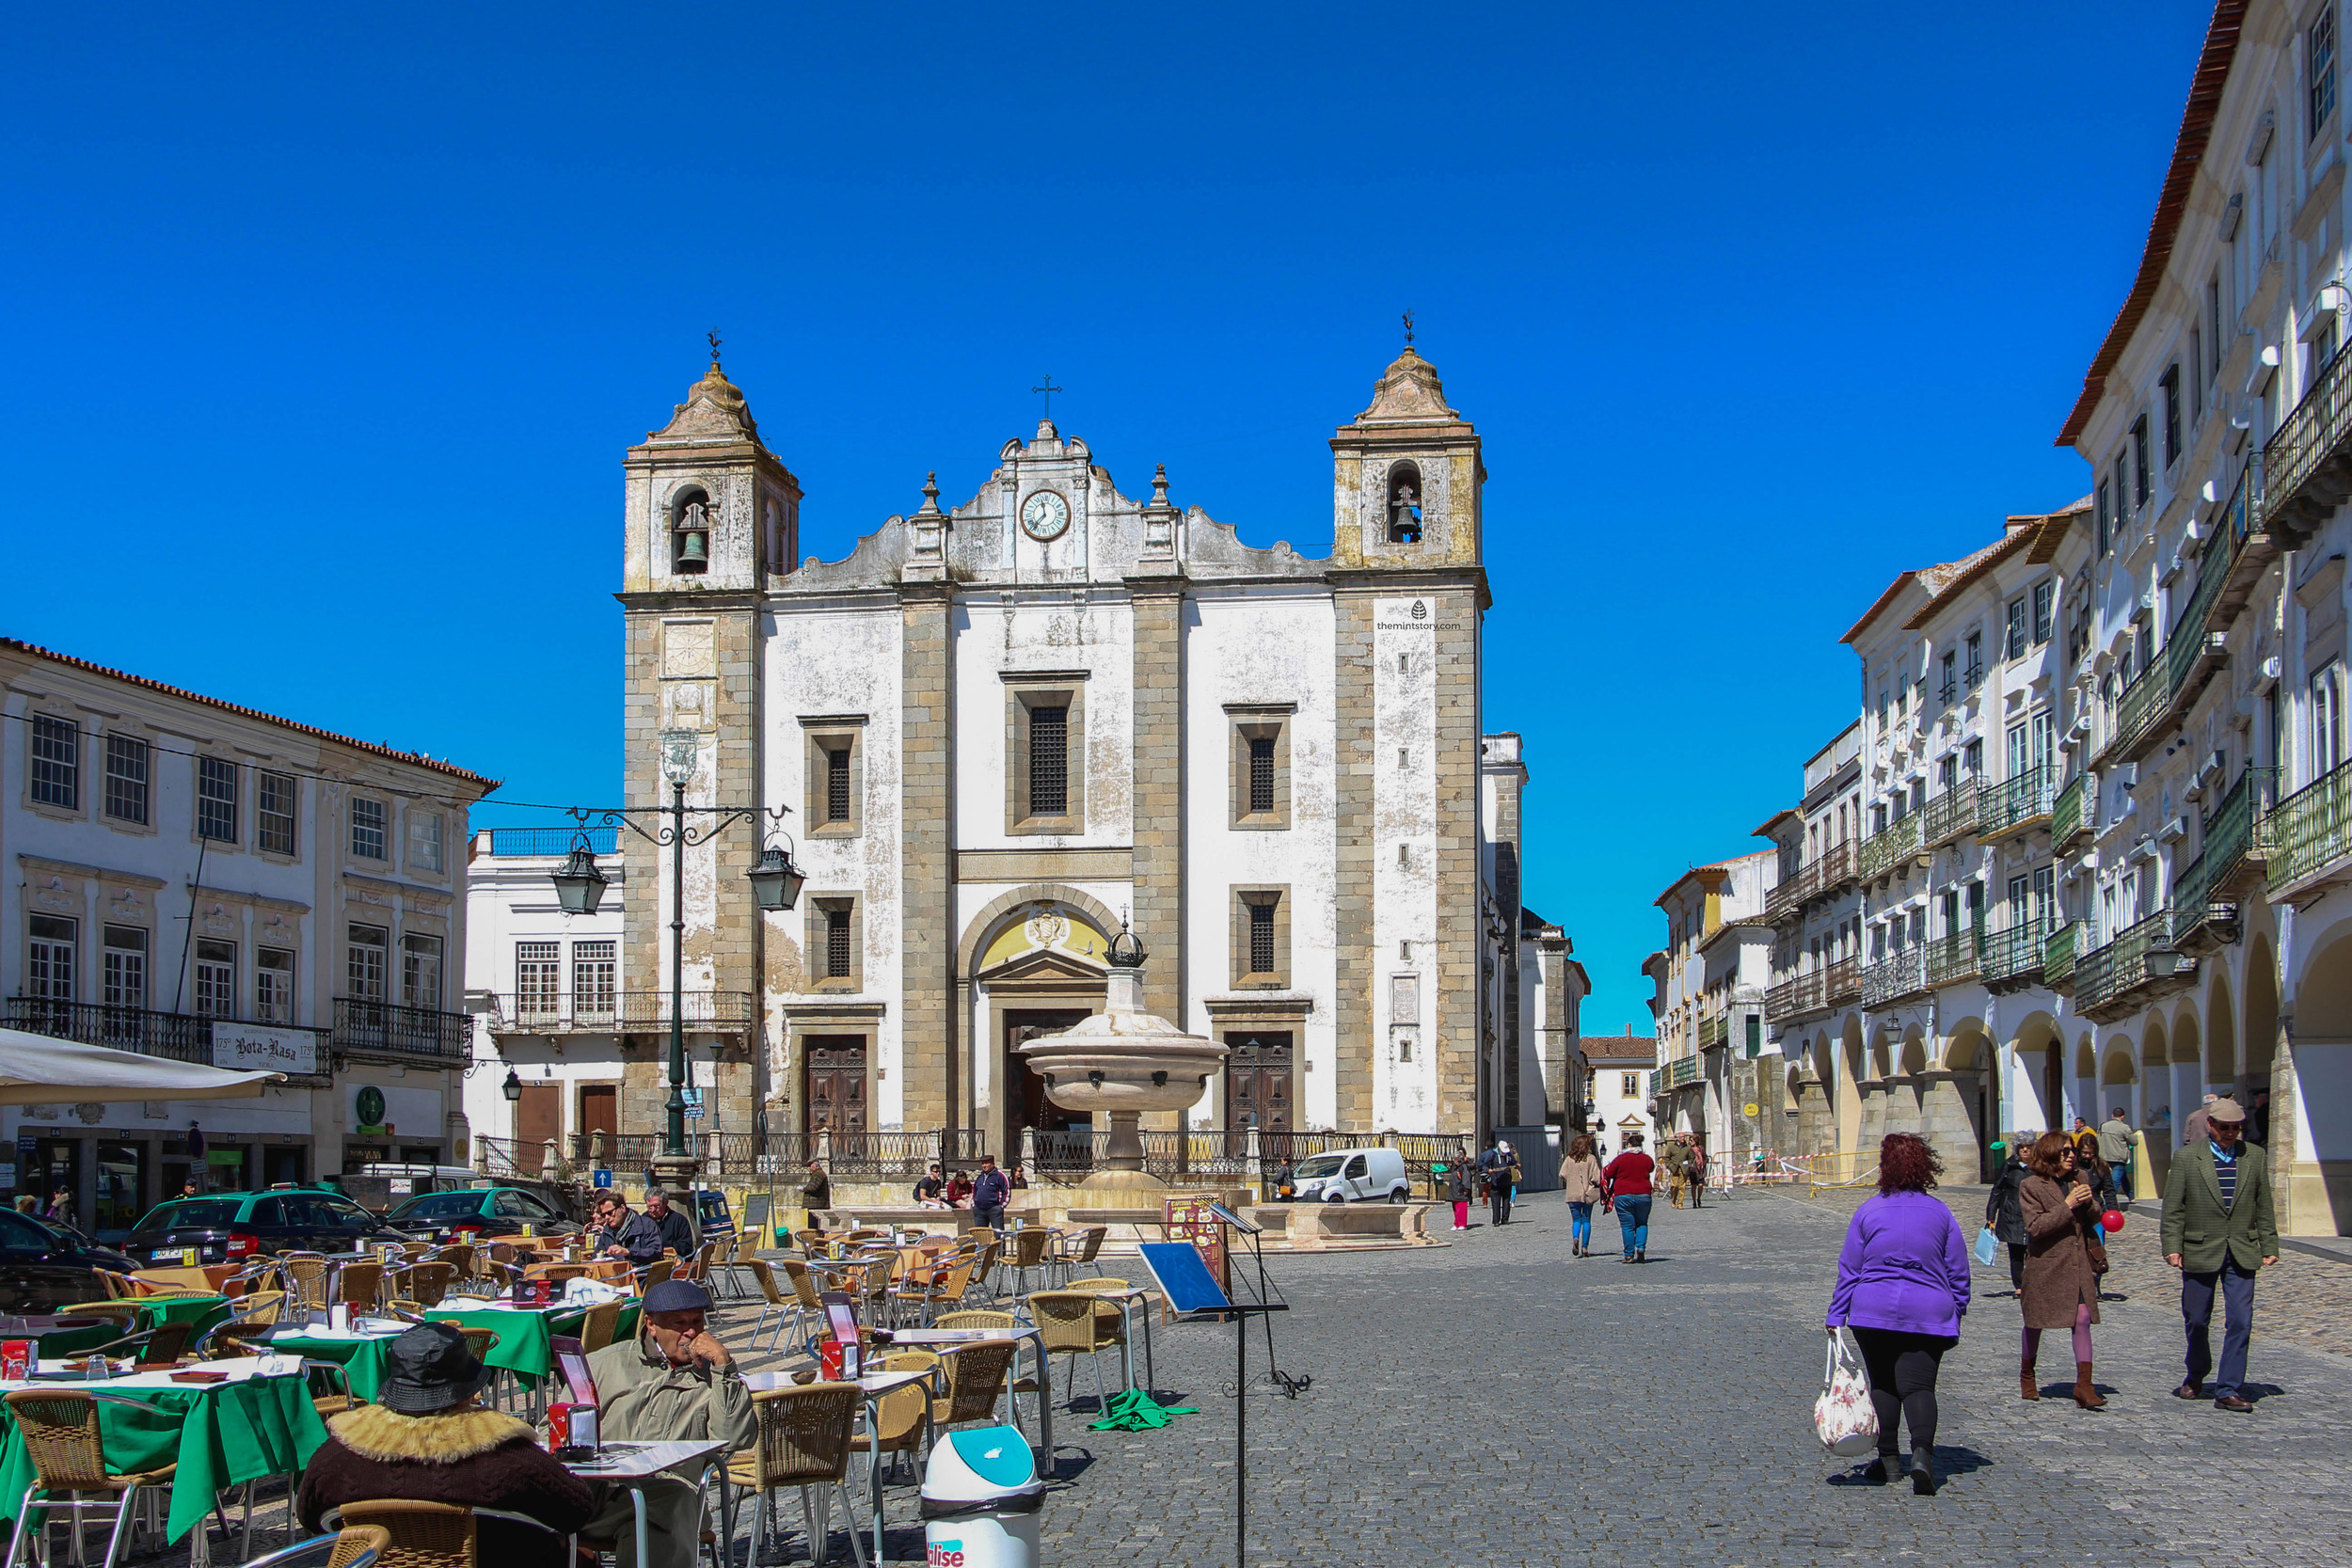 The main square of Evora